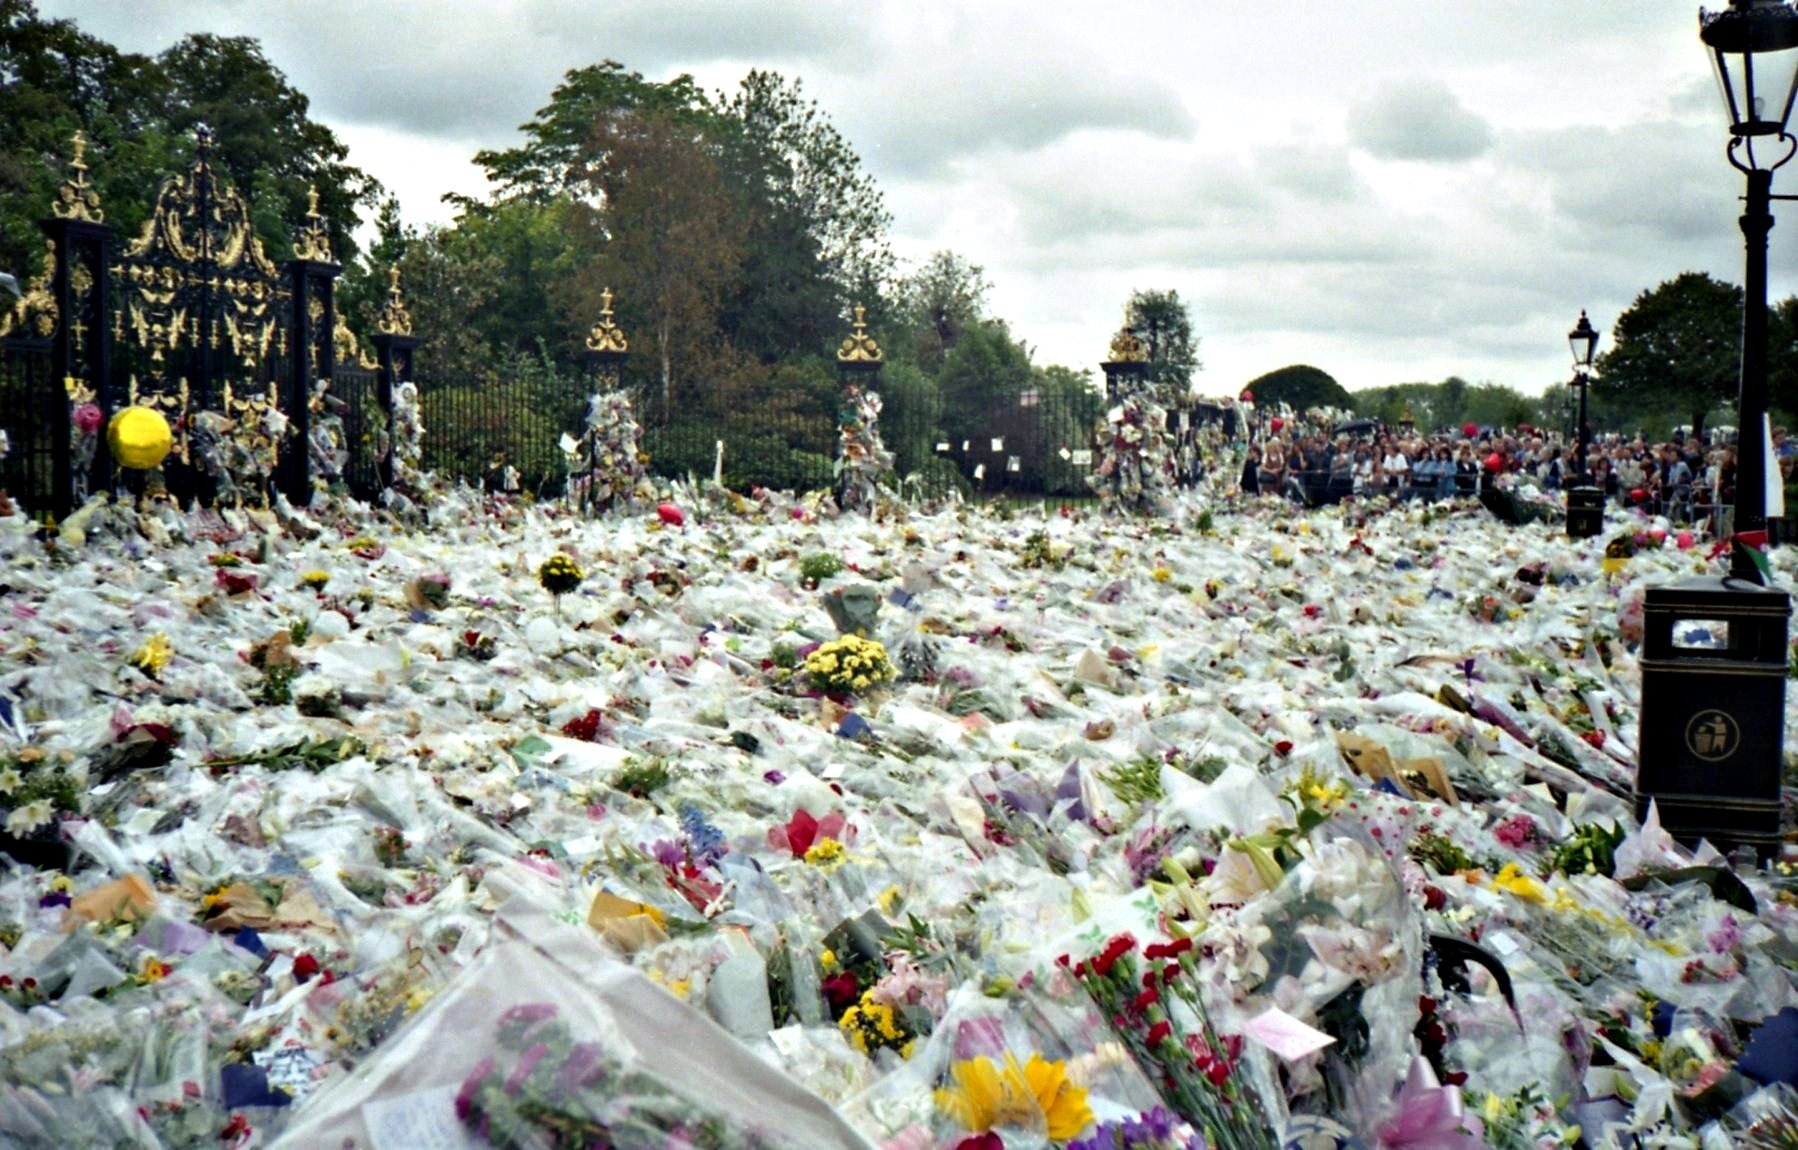 This picture shows the thousands of flowers left outside Buckingham Palace on the day of Diana's funeral.